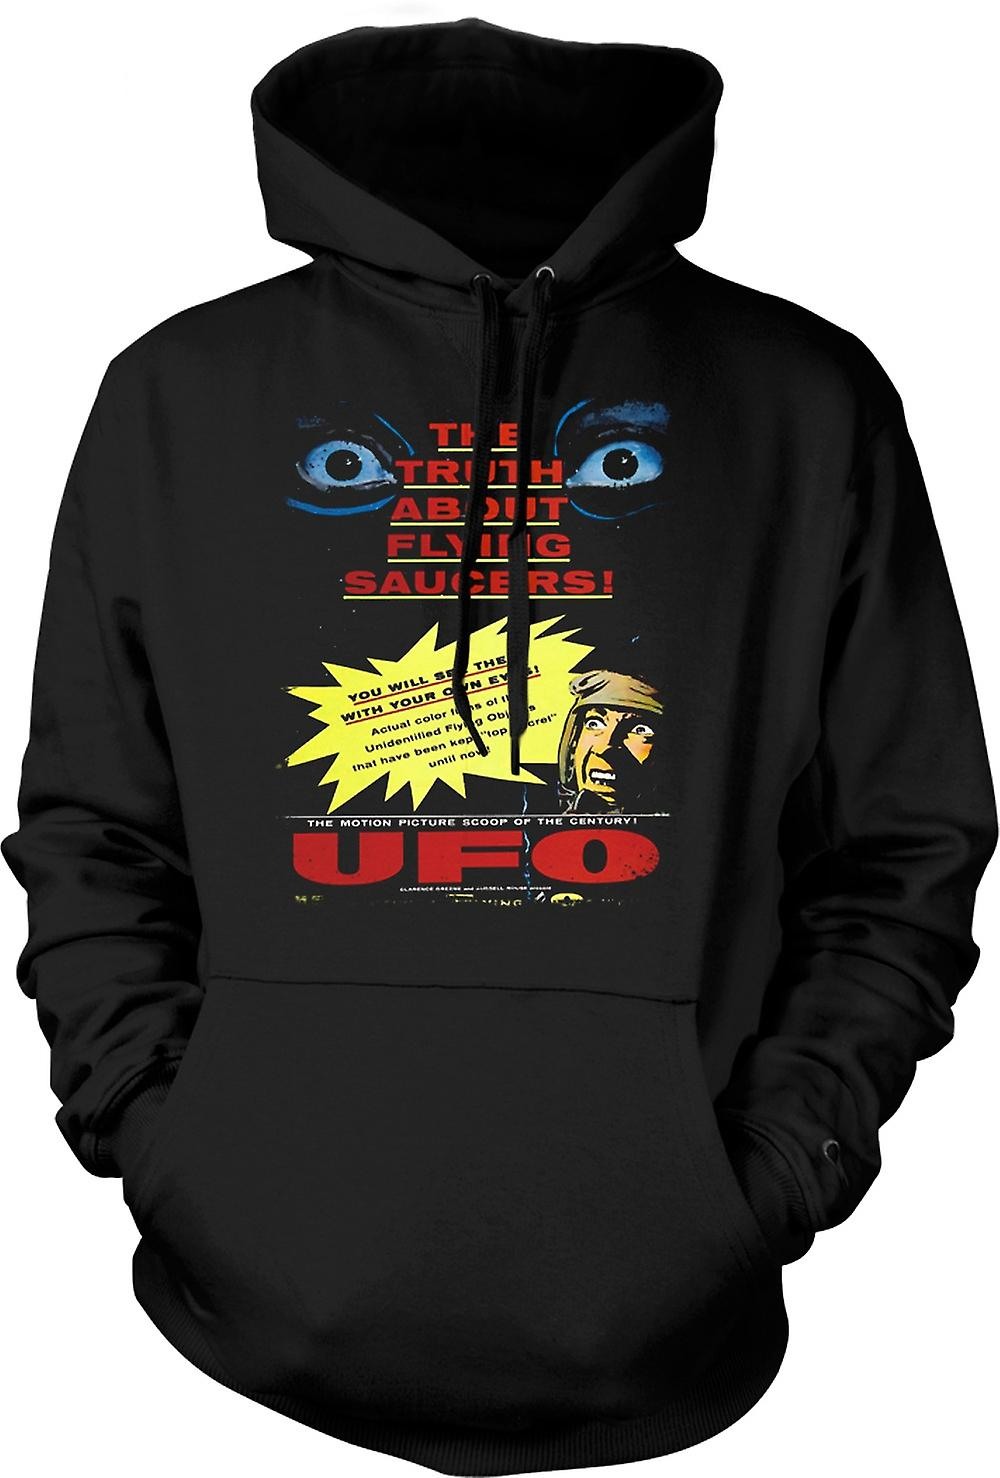 Mens Hoodie - waarheid over Flying Saucers Kids